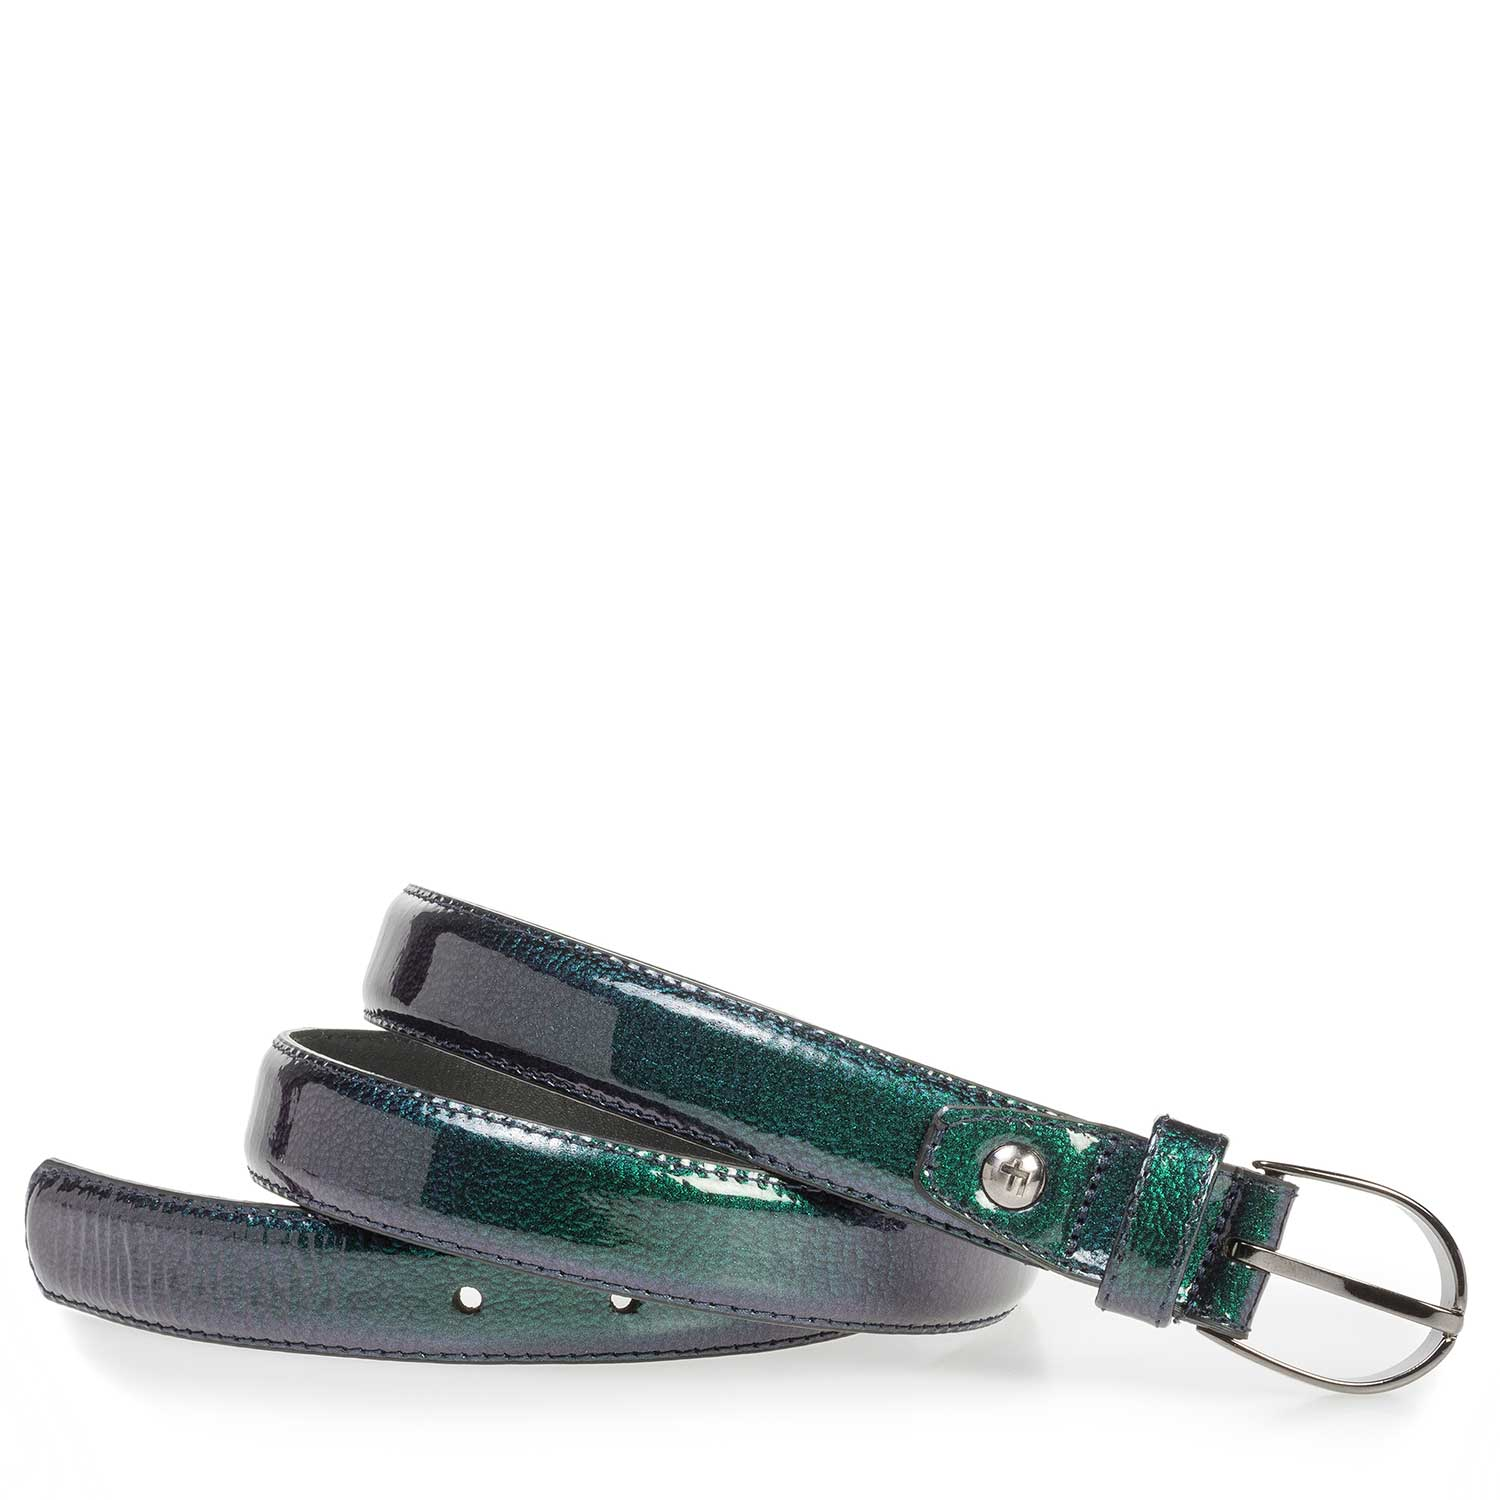 75813/45 - Green and blue leather belt with metallic print